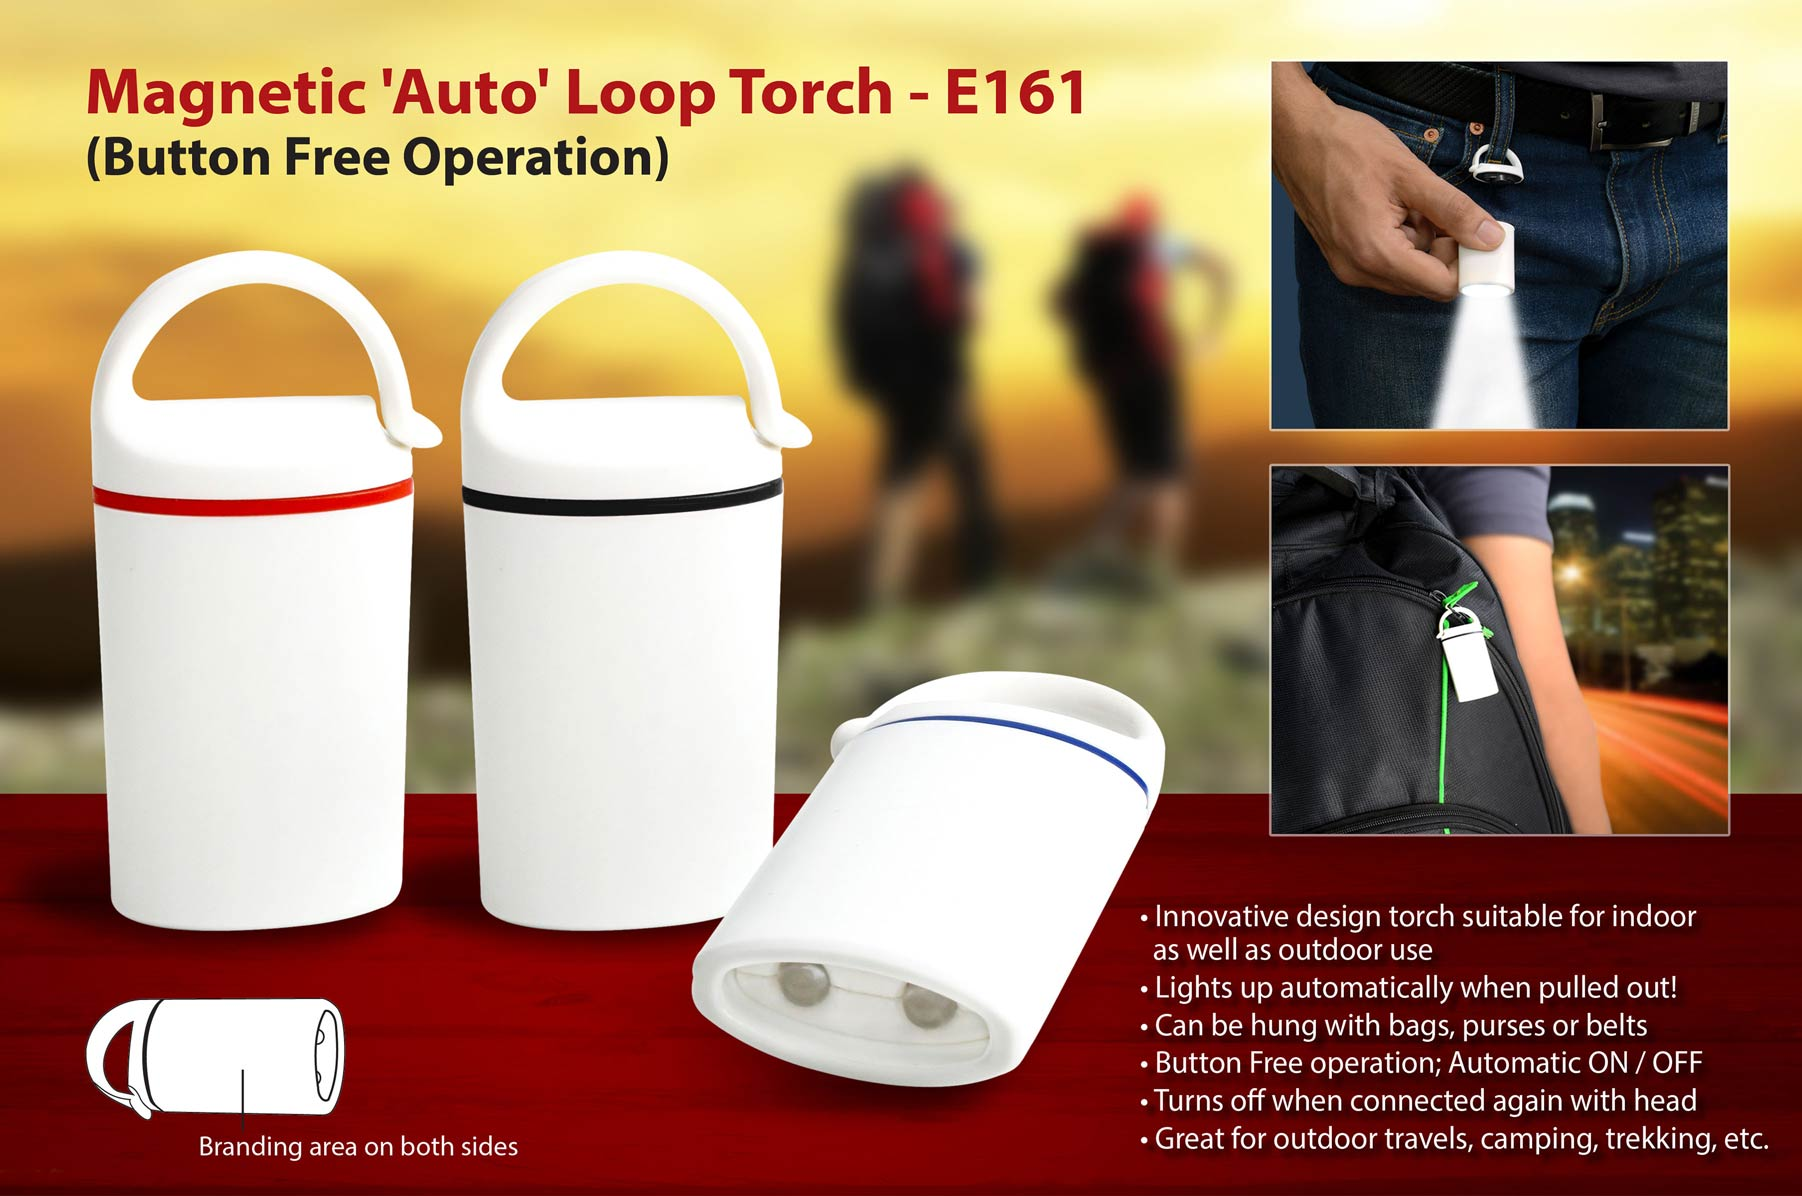 E161 - Auto loop torch: Magnetic, button free operation